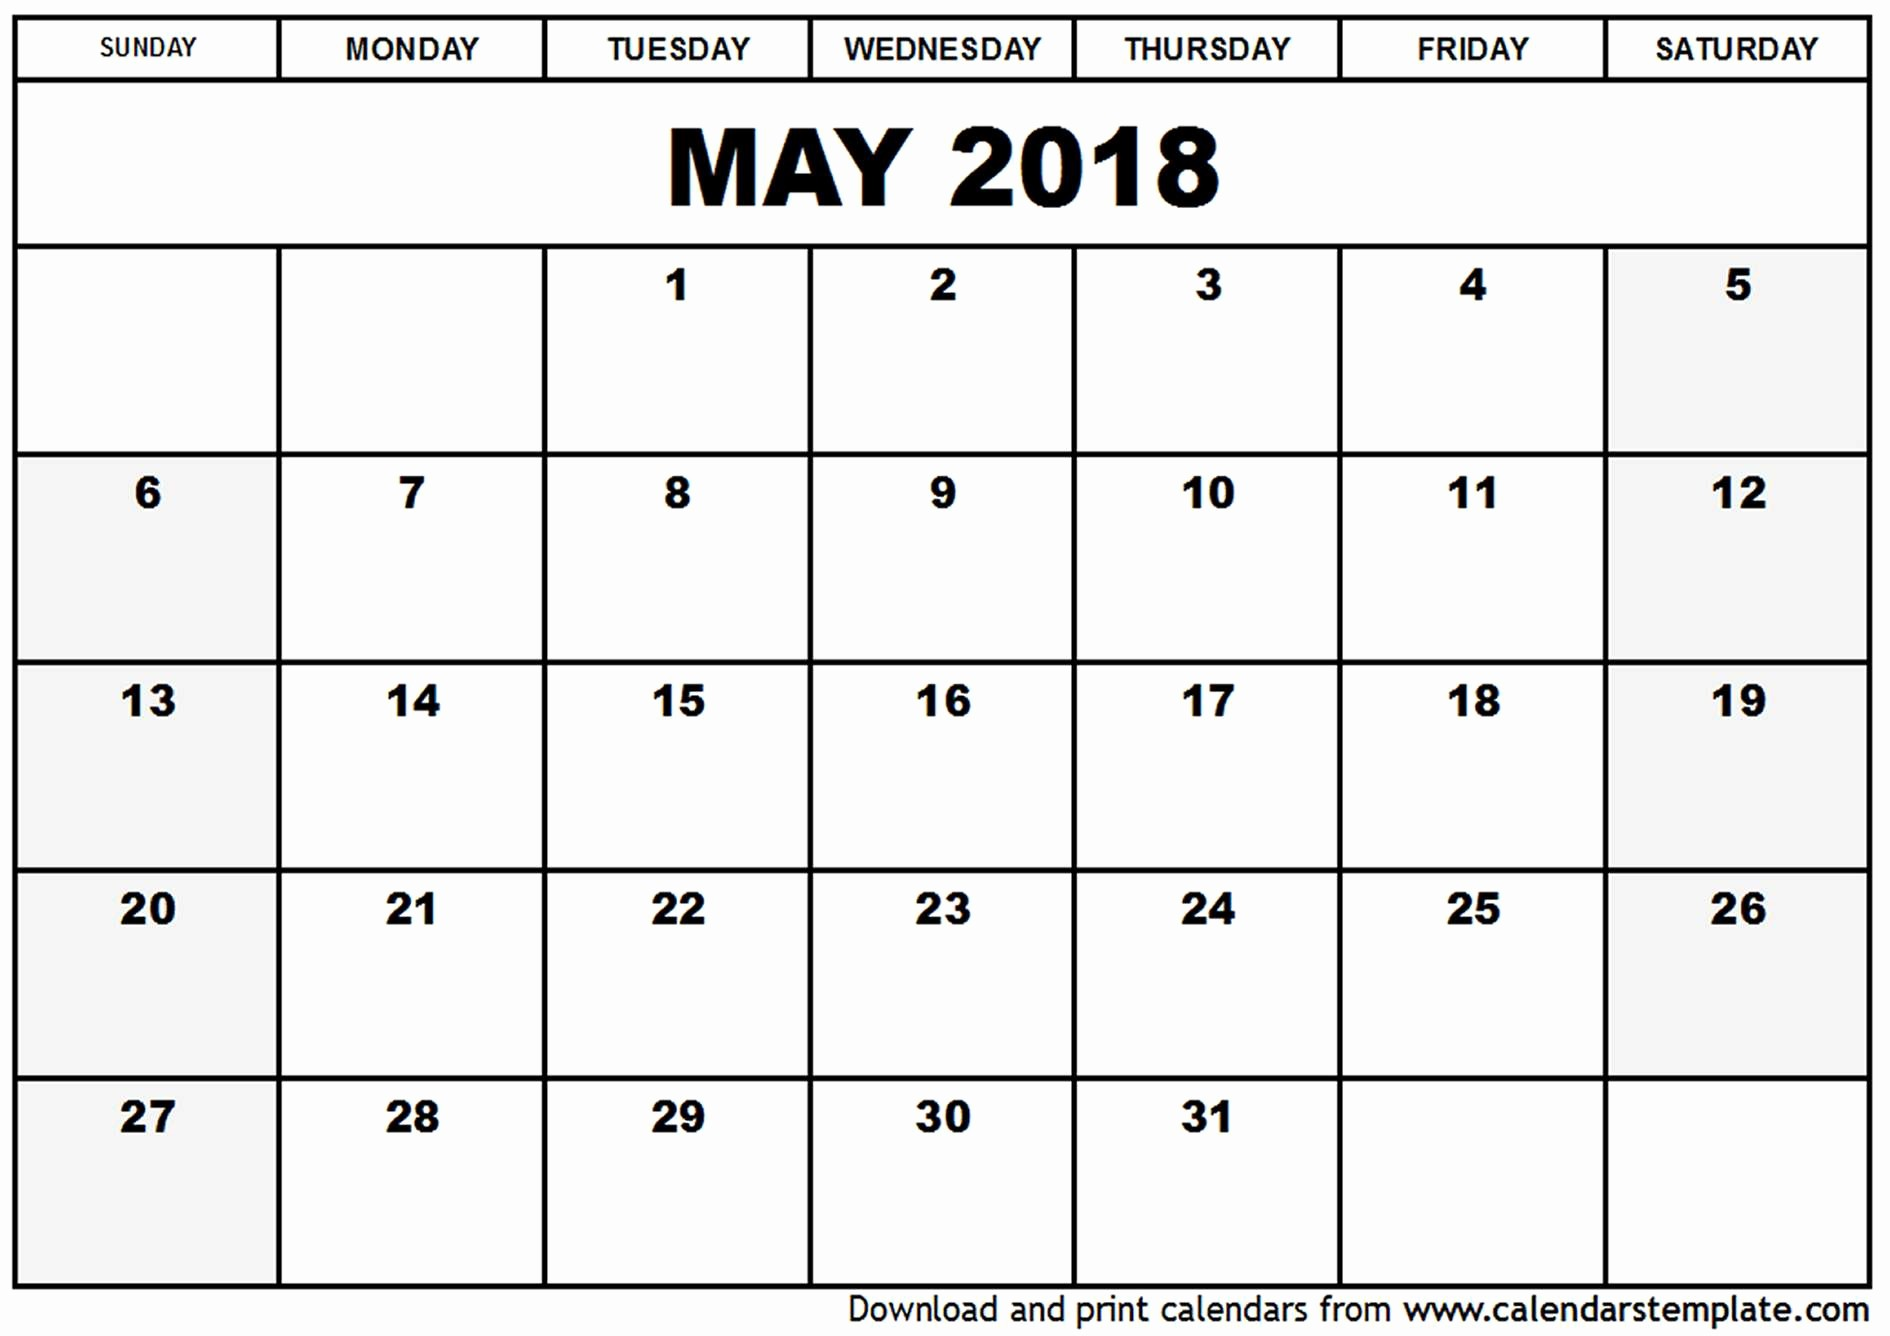 Blank May 2018 Calendar Printable Elegant May 2018 Calendar